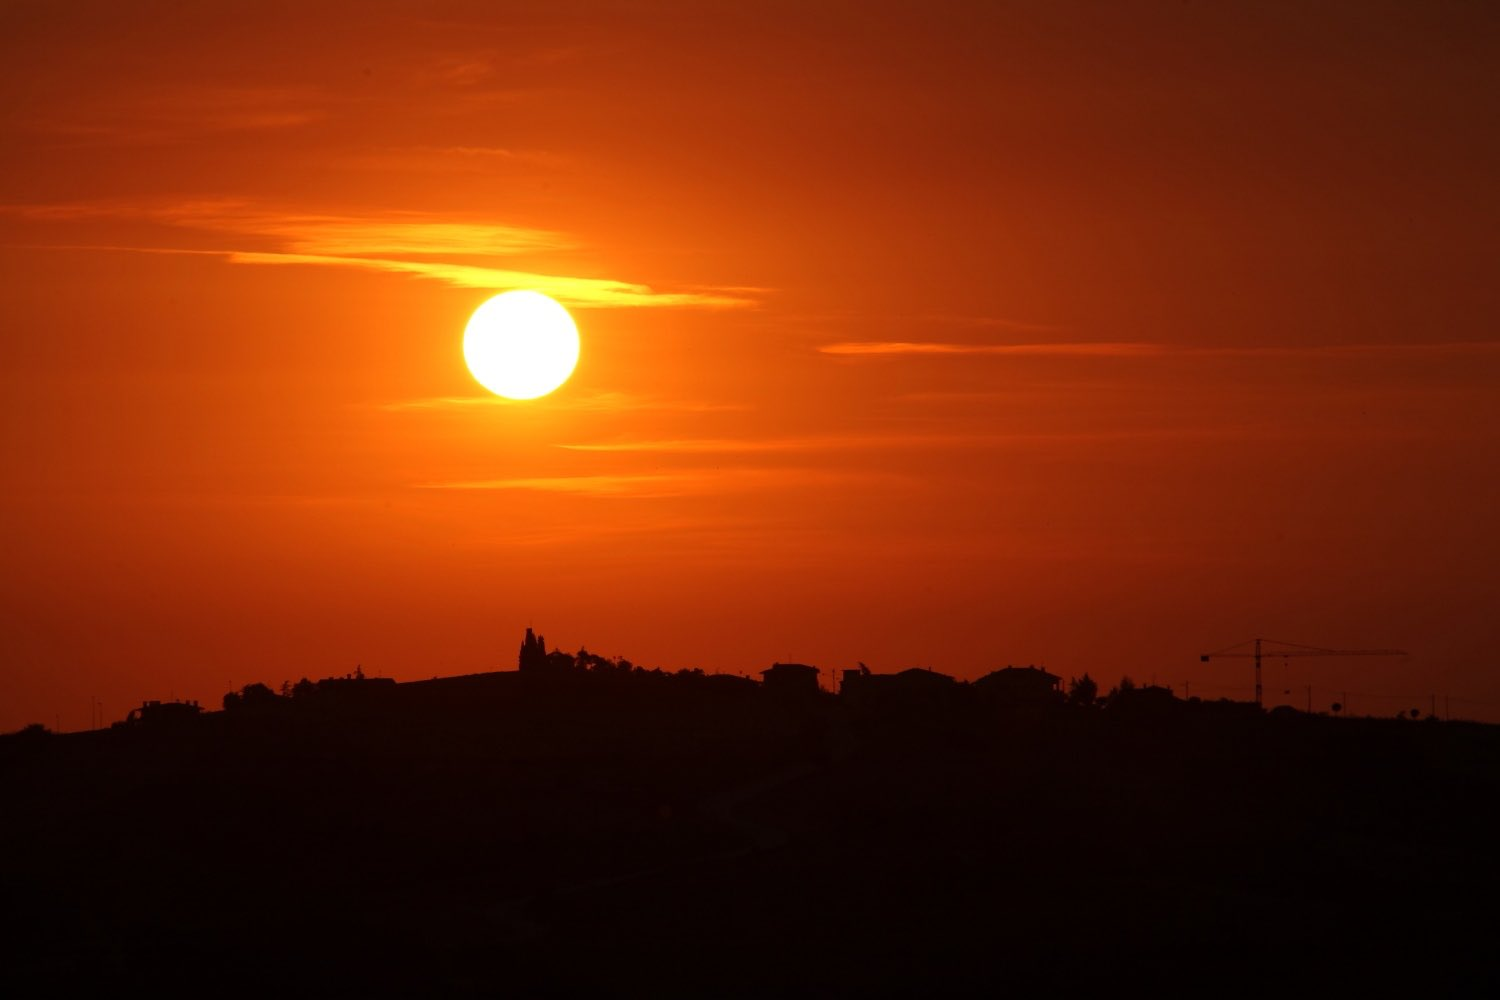 Torraccia Sunrise!    Rep. of San Marino. 31 July 2008. 1/320 s, f/11, ISO 100, 300 mm, EOS 5D + EF 28-300 L